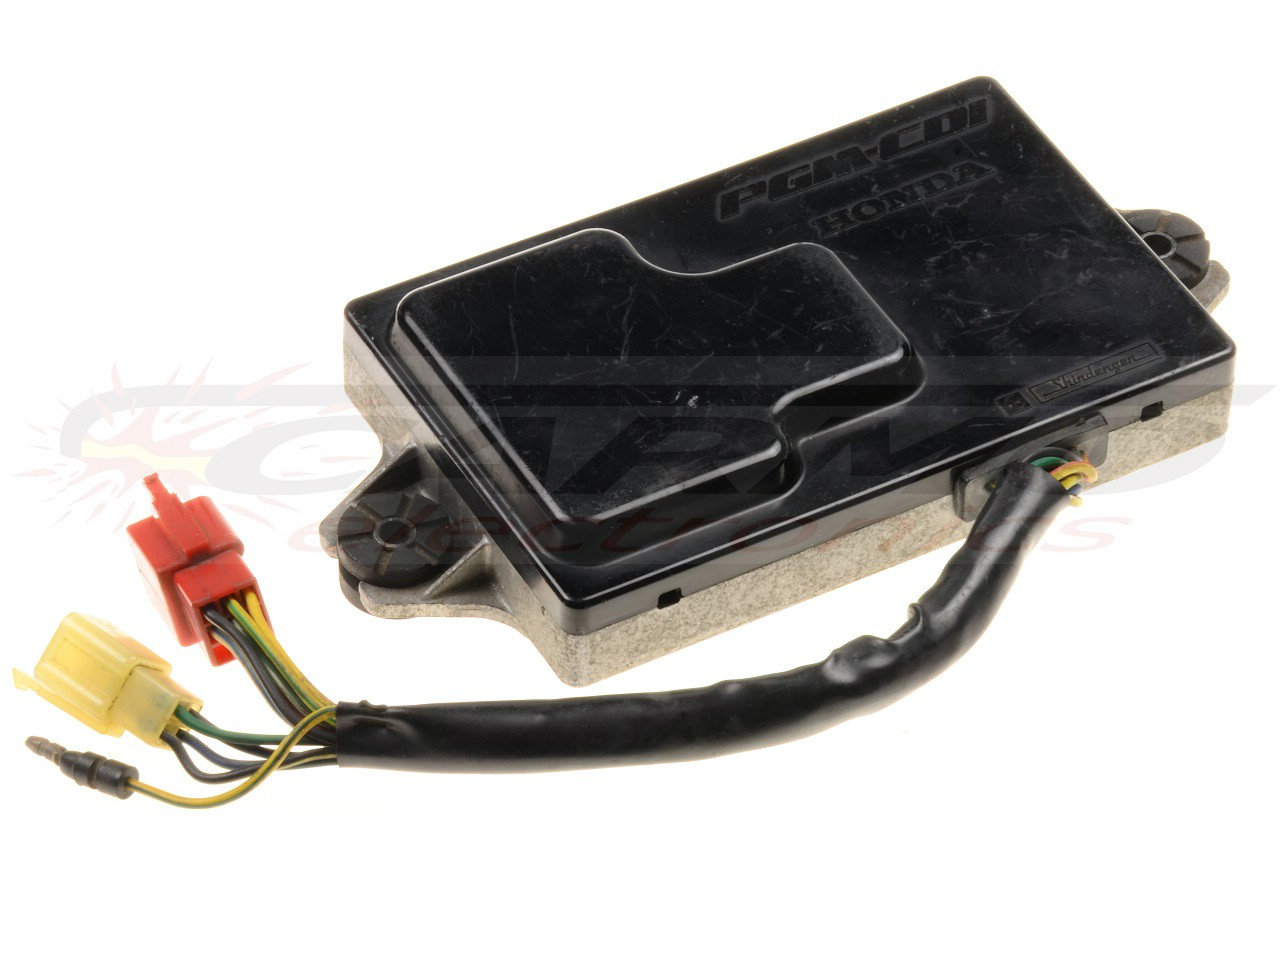 hight resolution of nsr250 igniter ignition module cdi tci box pgm cdi ci553a